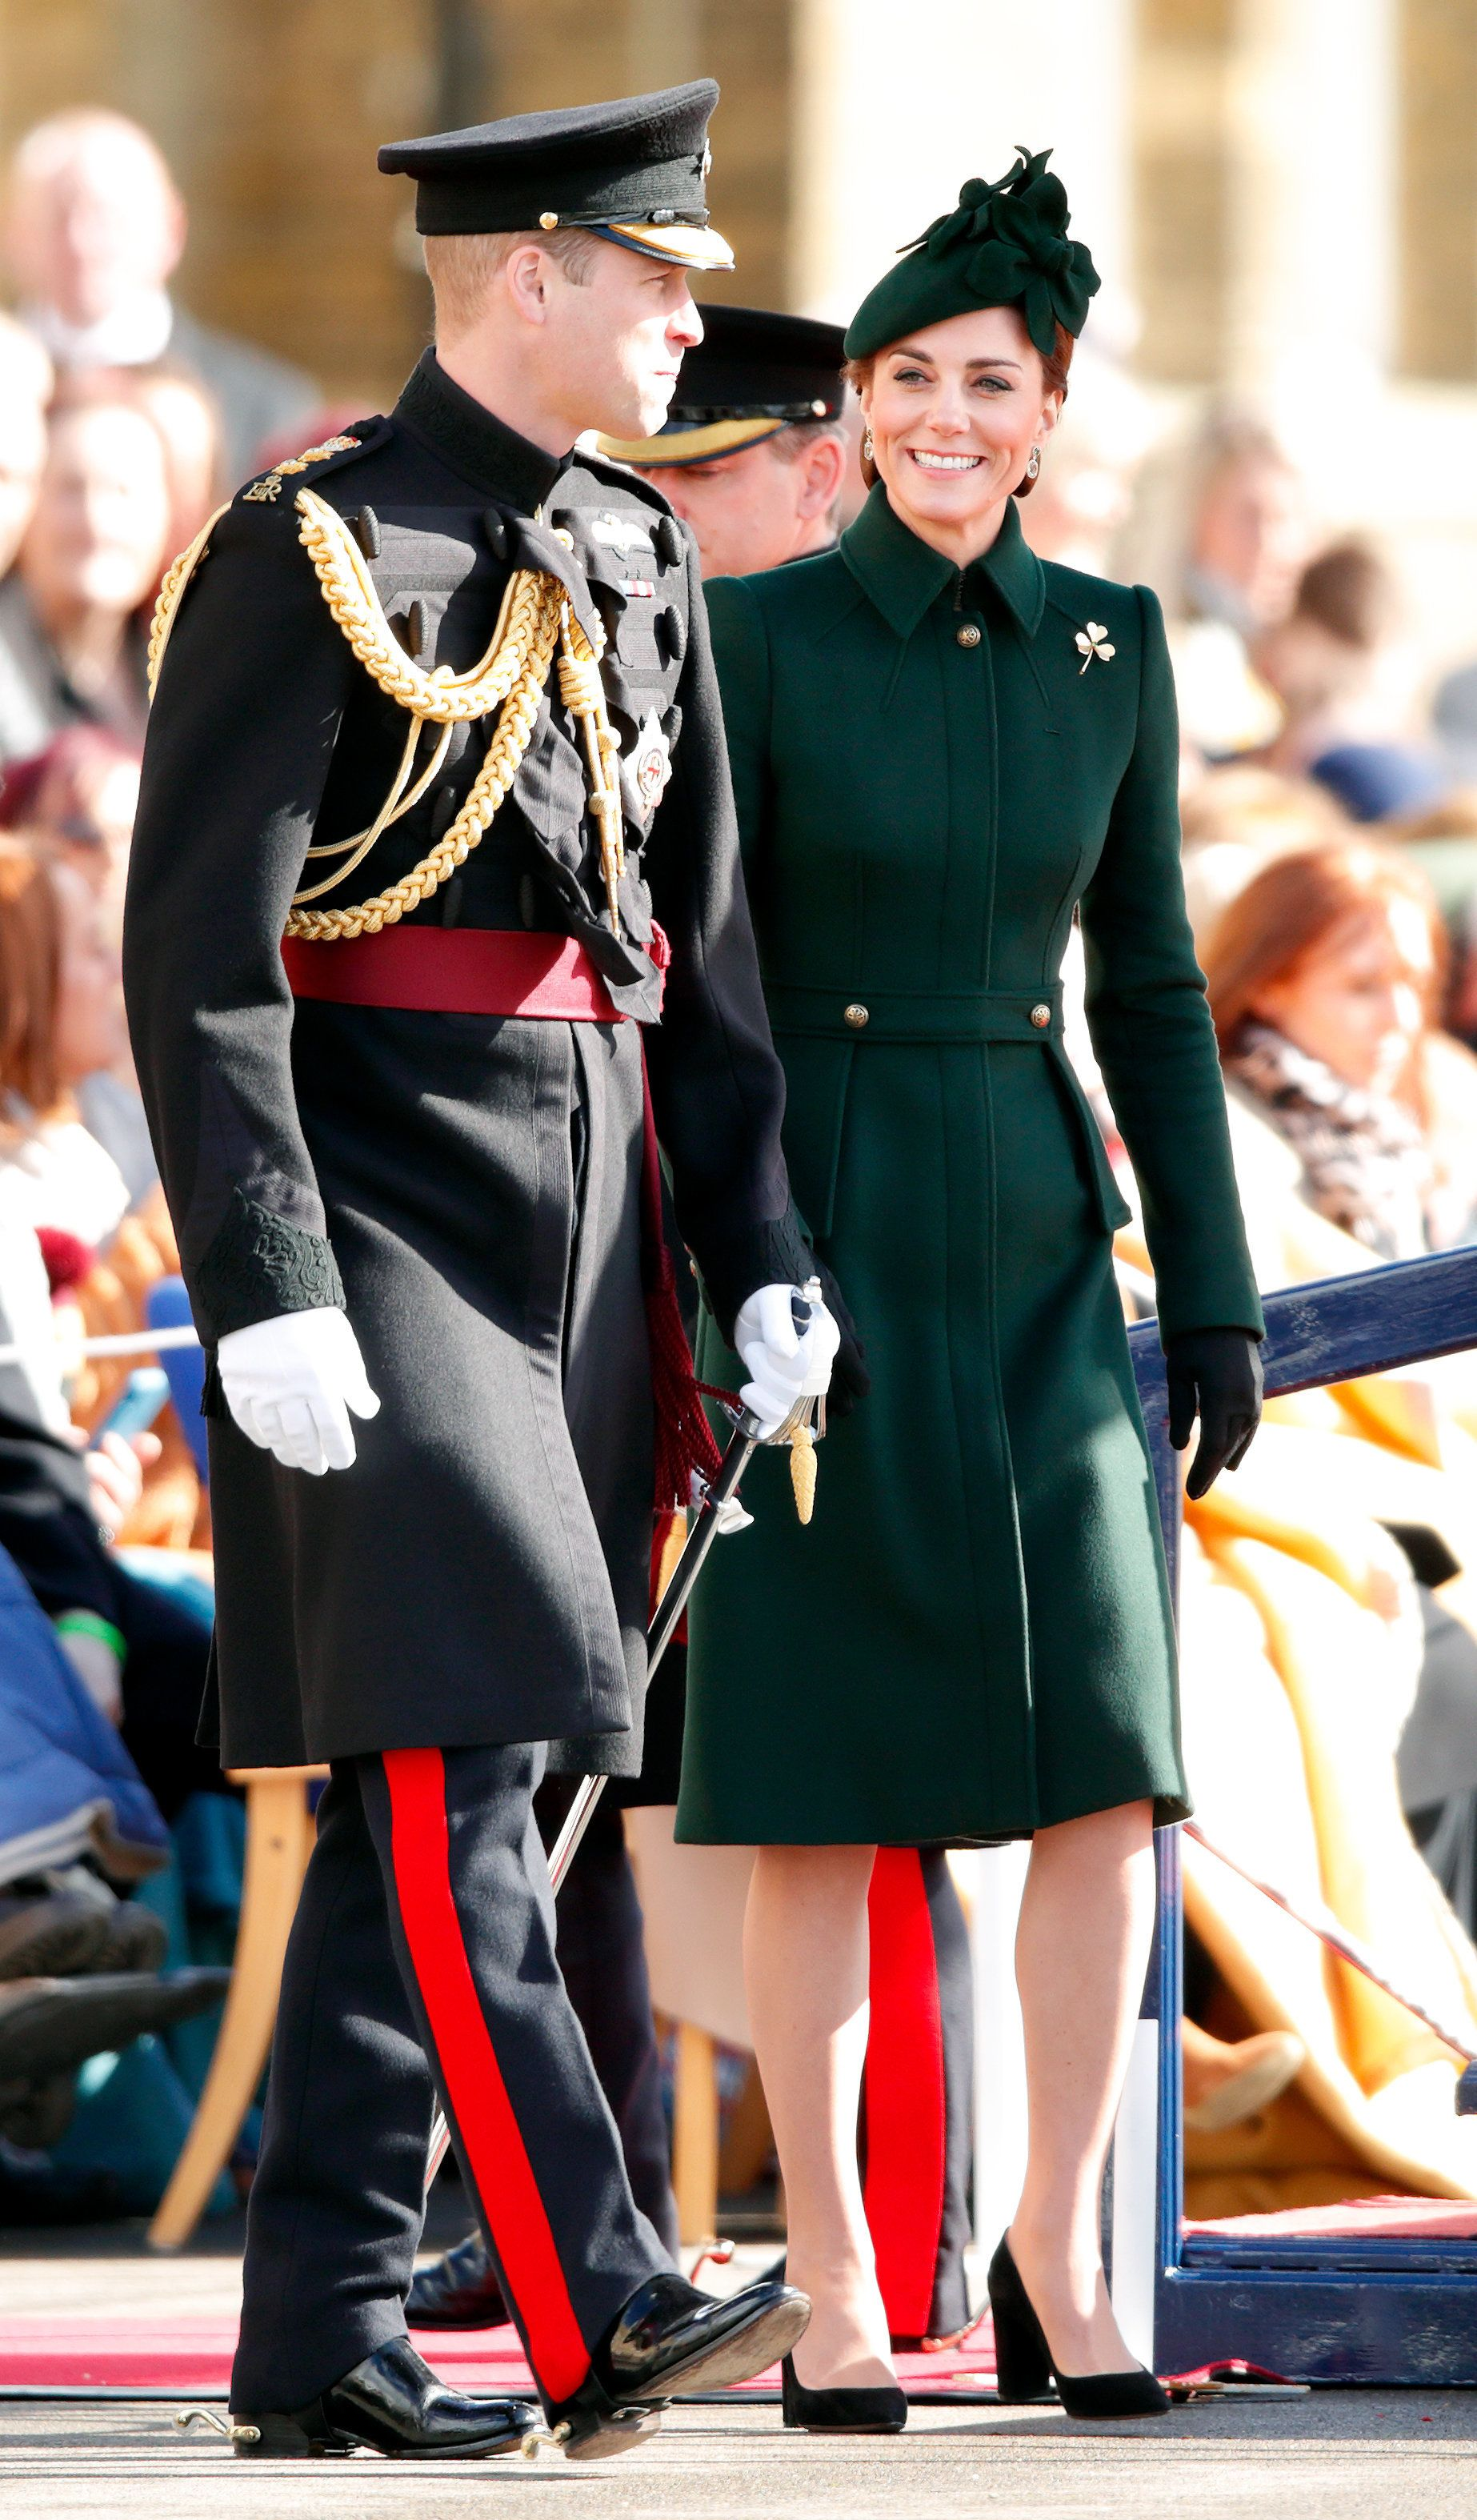 HOUNSLOW, UNITED KINGDOM - MARCH 17: (EMBARGOED FOR PUBLICATION IN UK NEWSPAPERS UNTIL 24 HOURS AFTER CREATE DATE AND TIME) Catherine, Duchess of Cambridge and Prince William, Duke of Cambridge (Colonel of the Irish Guards) attend the 1st Battalion Irish Guards St Patrick's Day Parade at Cavalry Barracks on March 17, 2019 in Hounslow, England. (Photo by Max Mumby/Indigo/Getty Images)